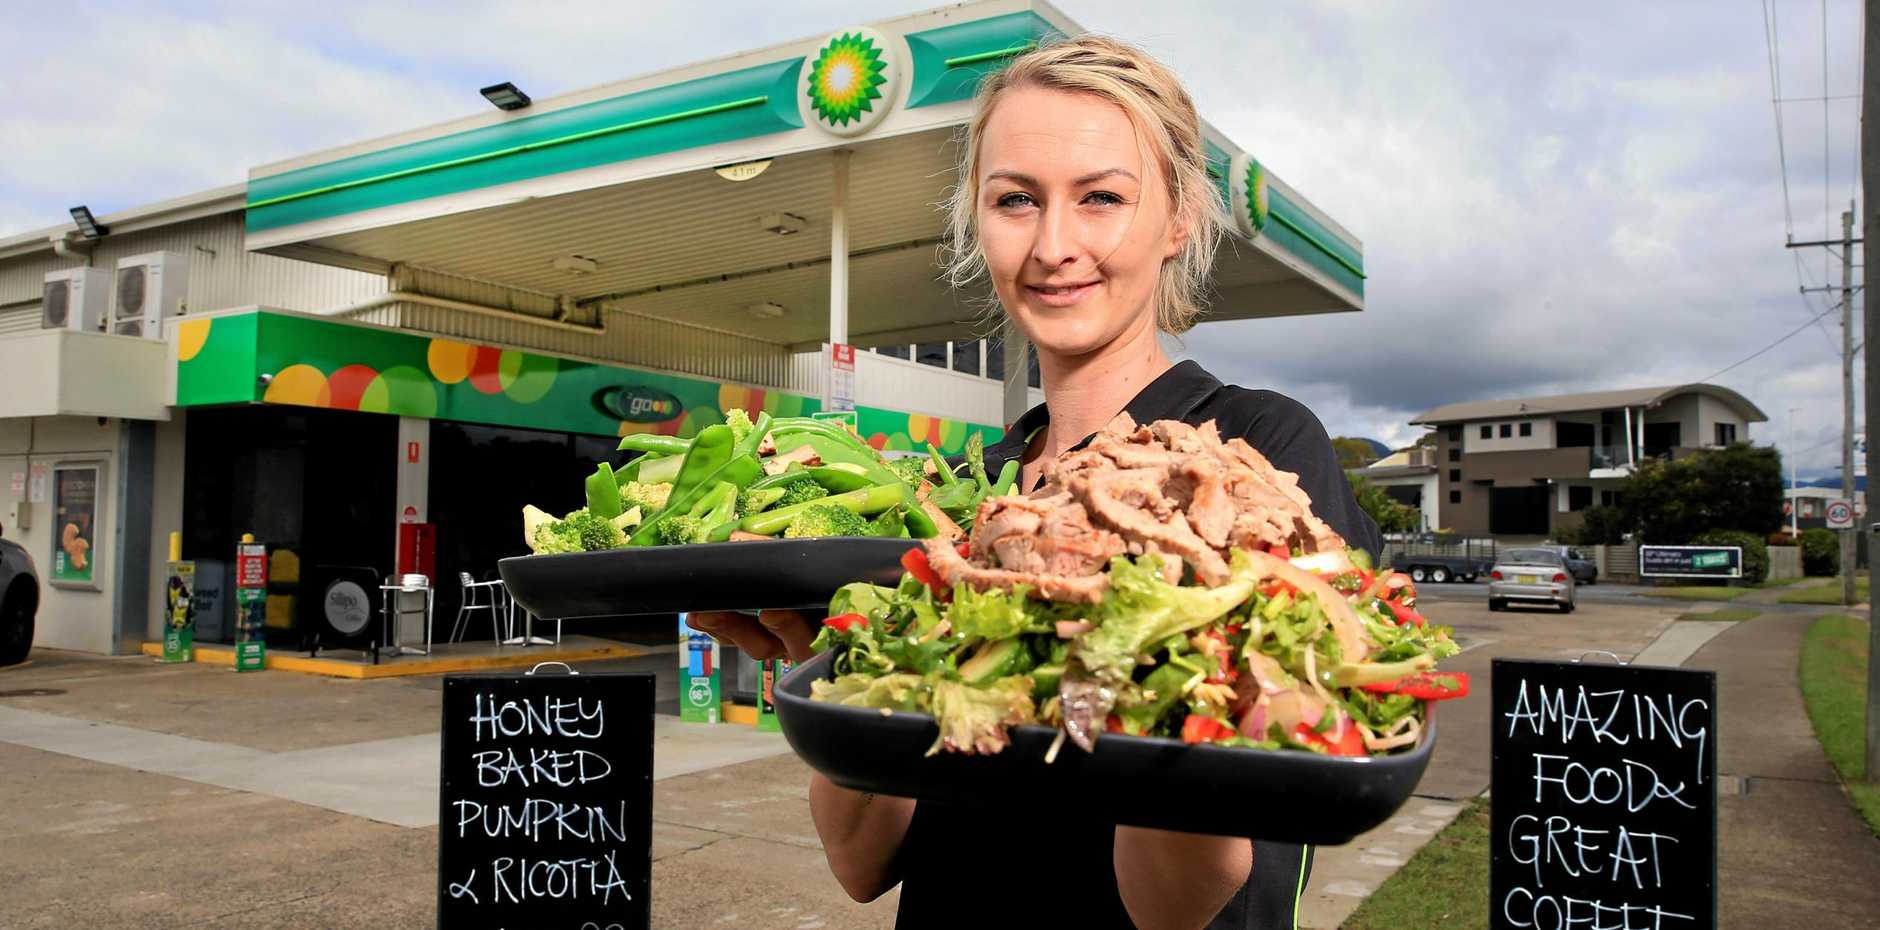 DIG IN: Renee Glover from BP Murwillumbah, is serving up fresh food for customers.